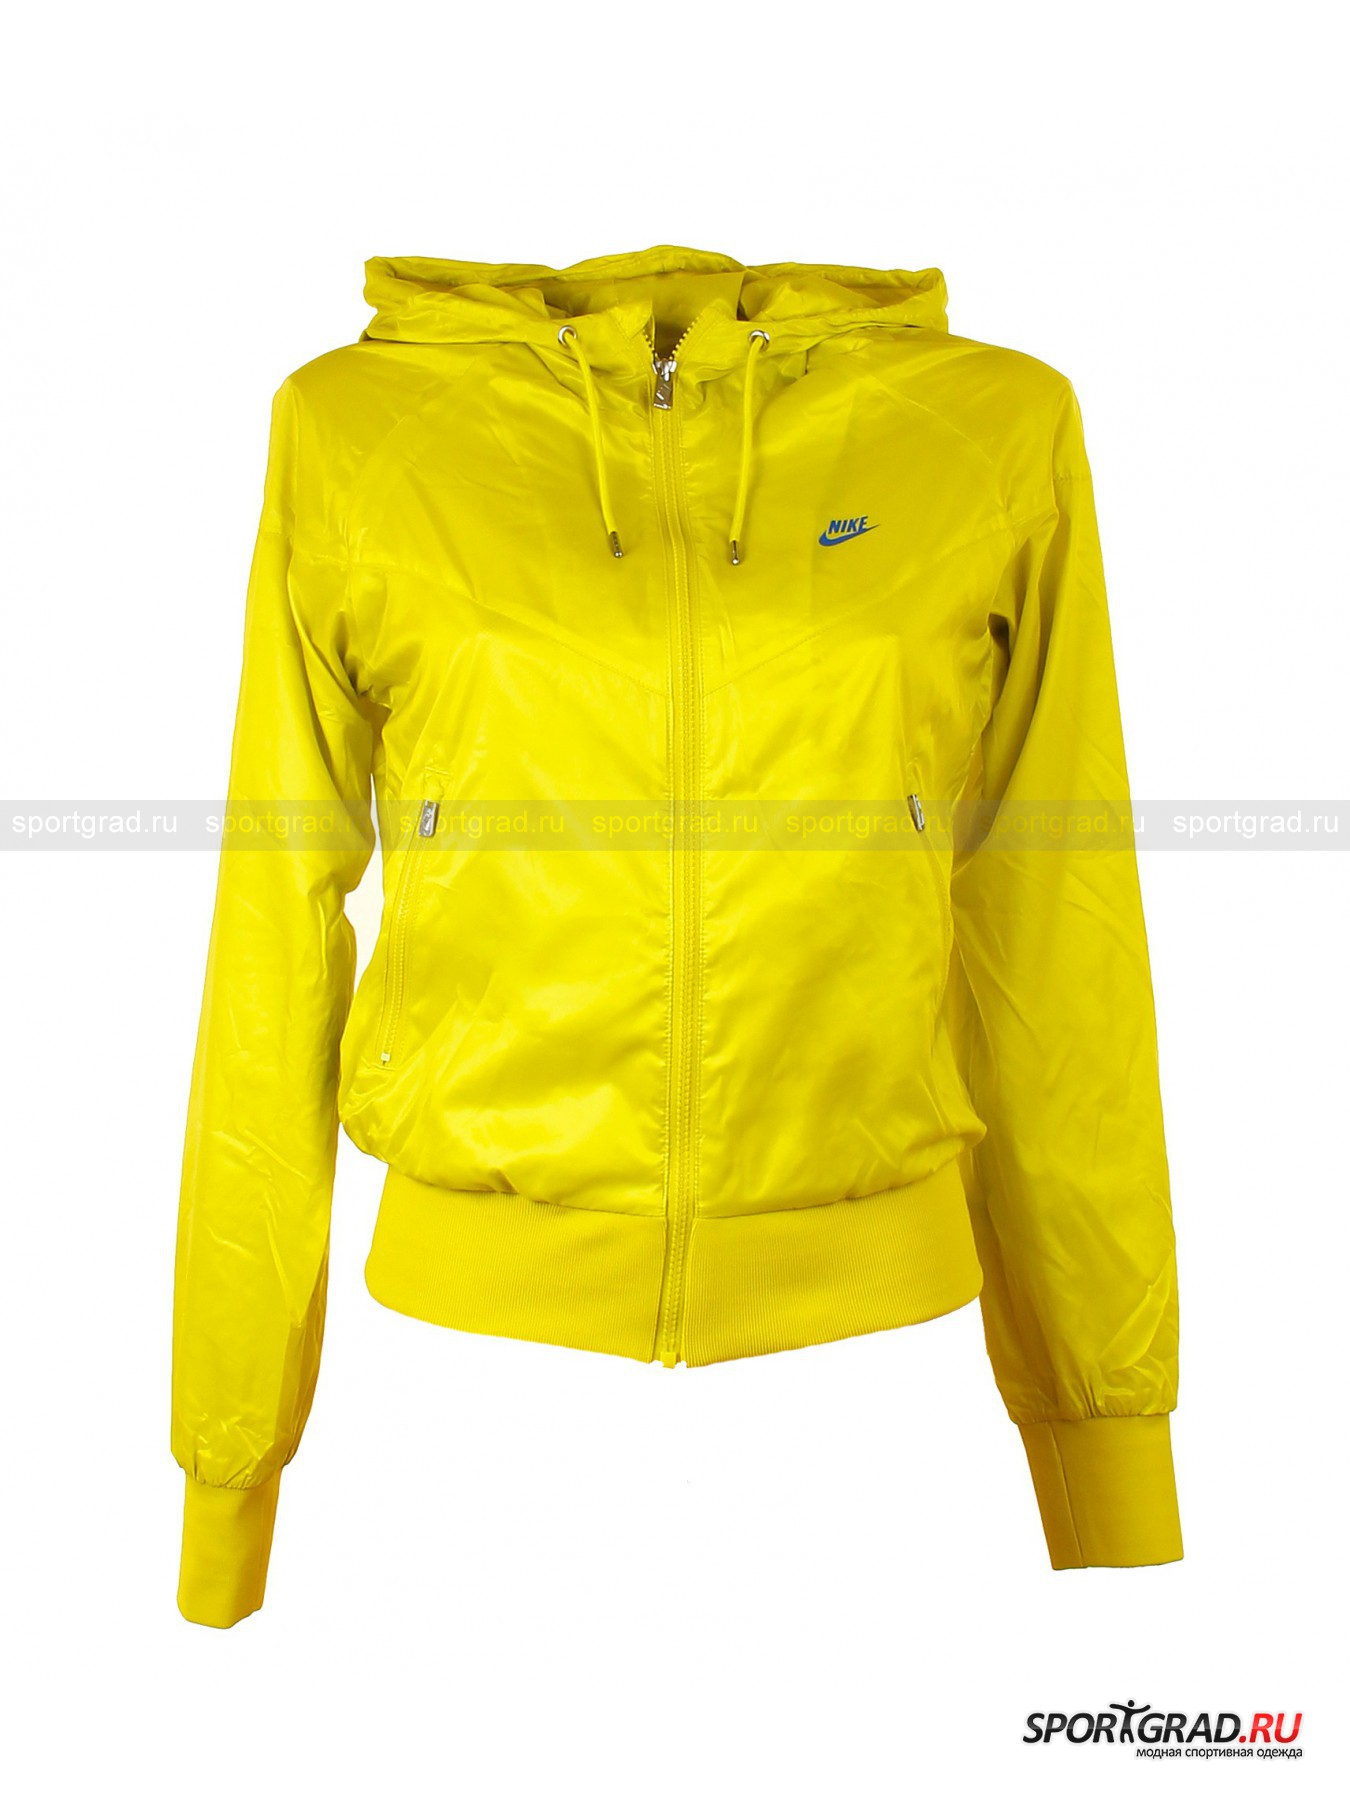 Ветровка жен Better Windrunner NIKE